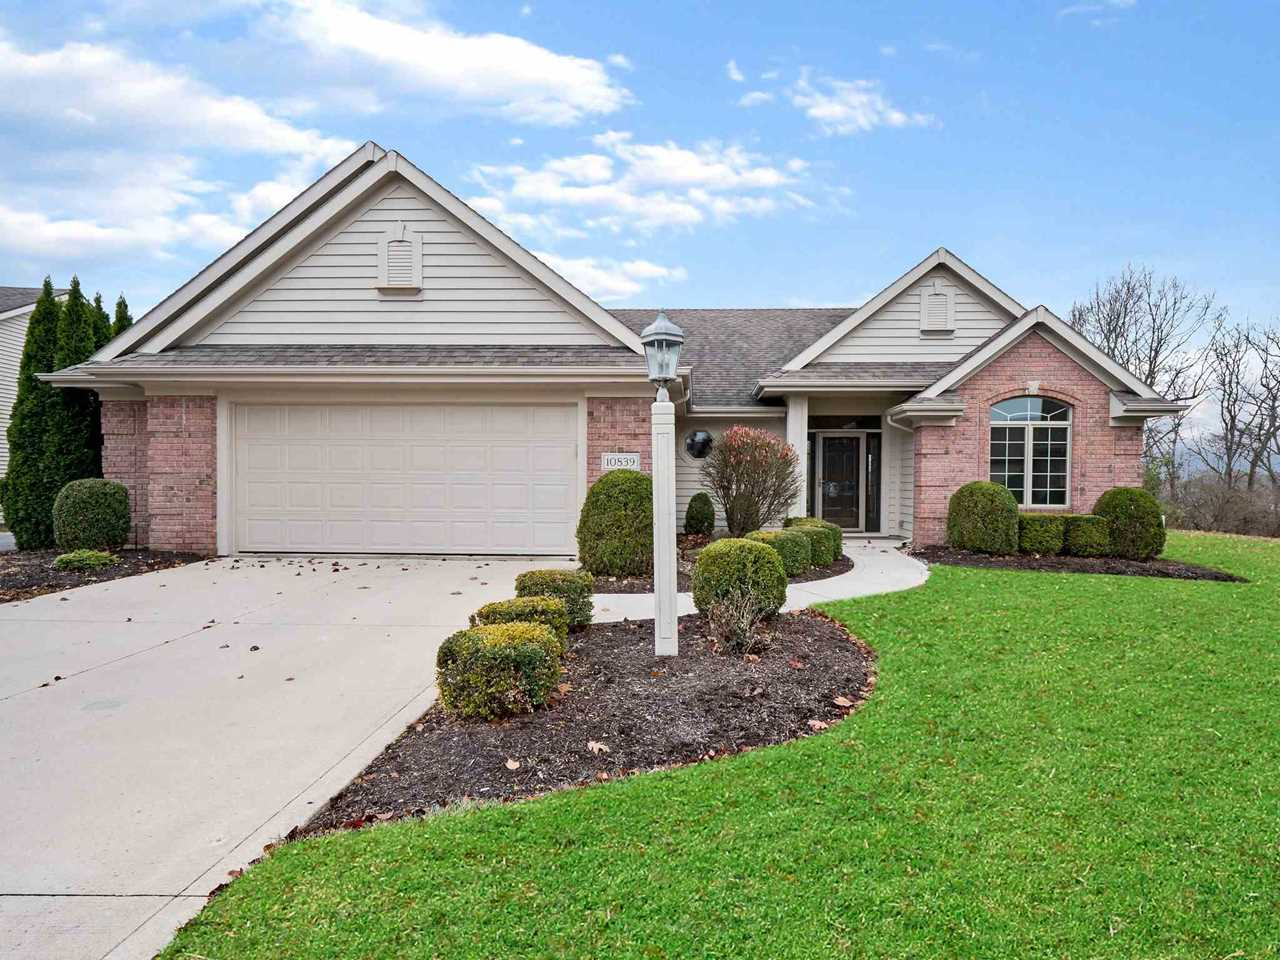 10839 Summerhill Place Fort Wayne, IN 46814 | MLS 201851578 Photo 1